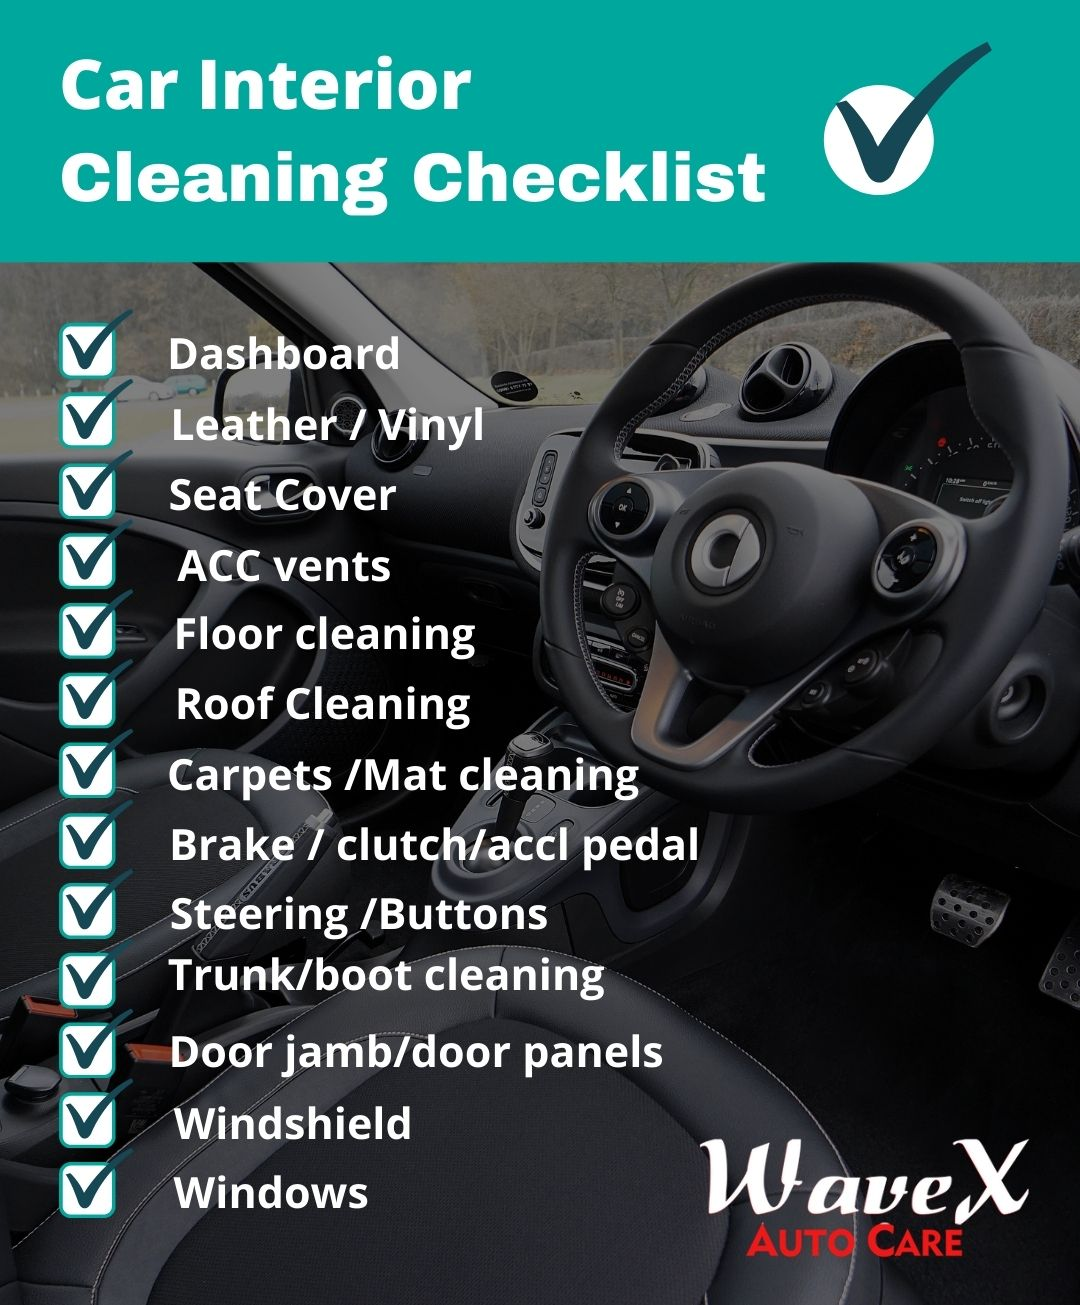 Car interior cleaning checklist